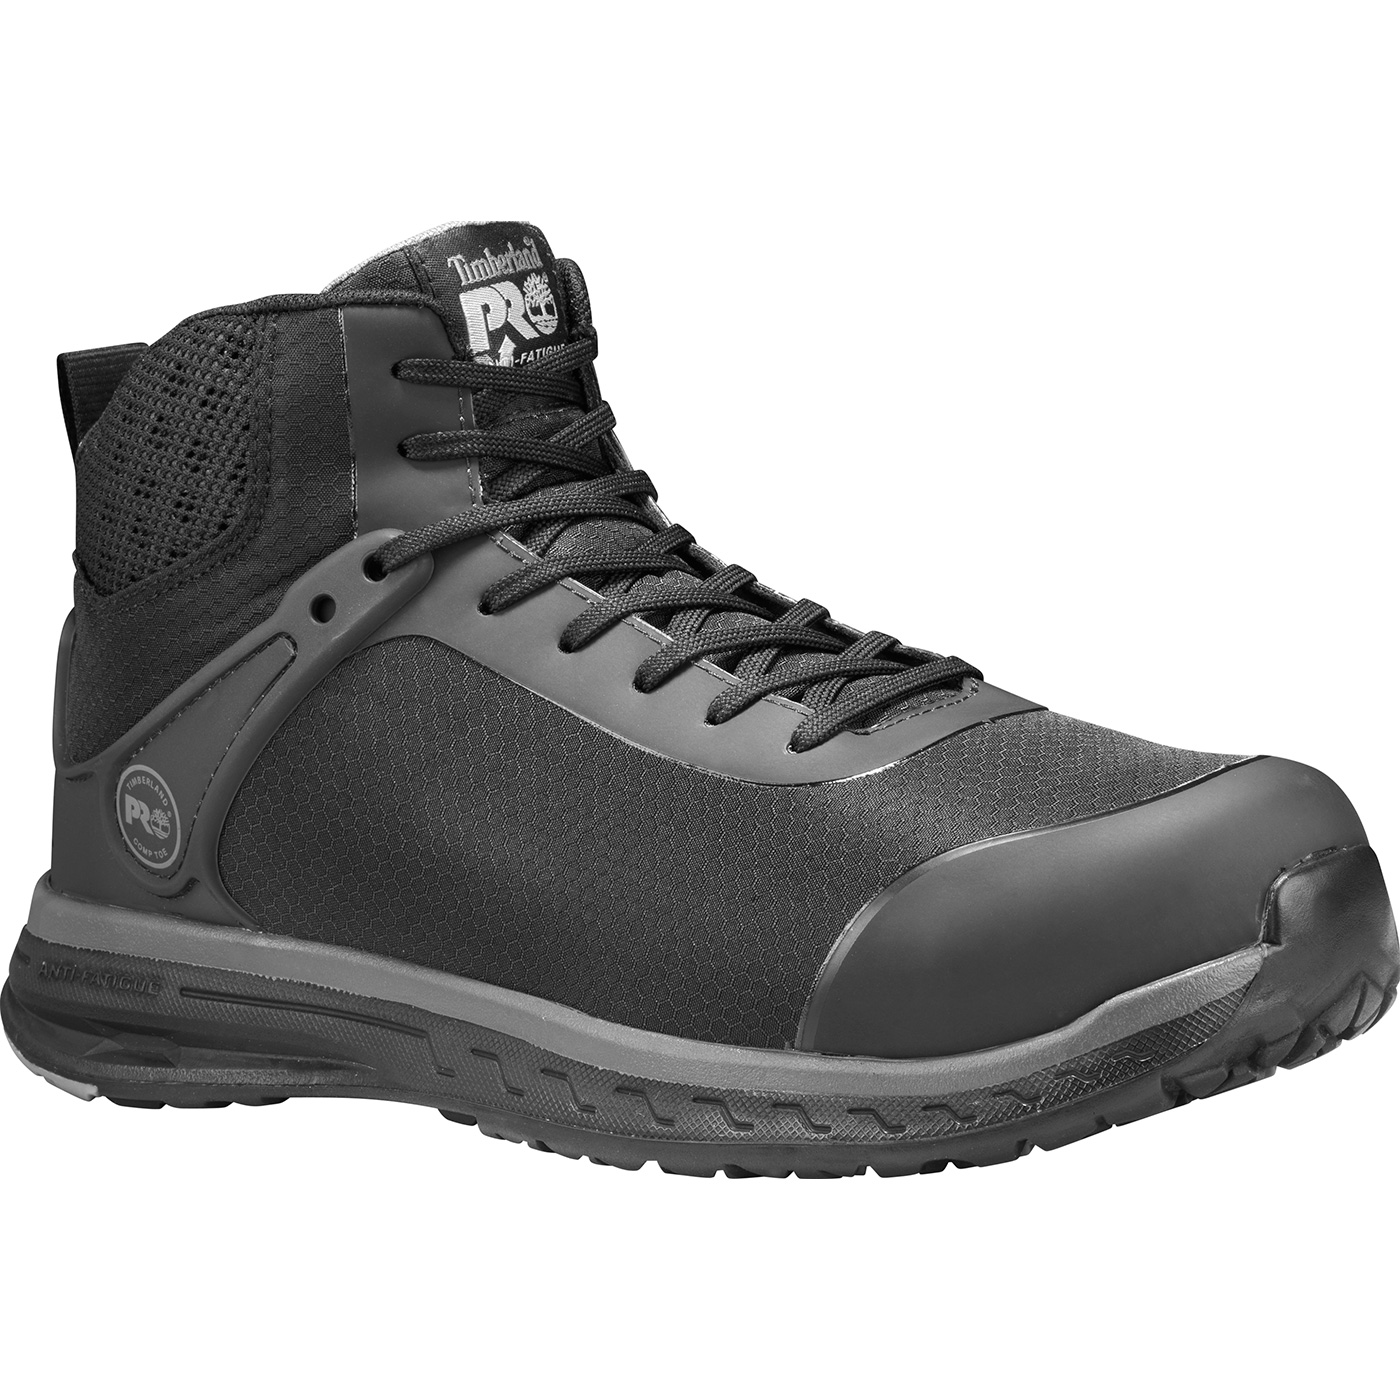 315cce776726 Timberland PRO Drivetrain Mid Men s Composite Toe Static-Dissipative  Athletic Work ShoeTimberland PRO Drivetrain Mid Men s Composite Toe  Static-Dissipative ...